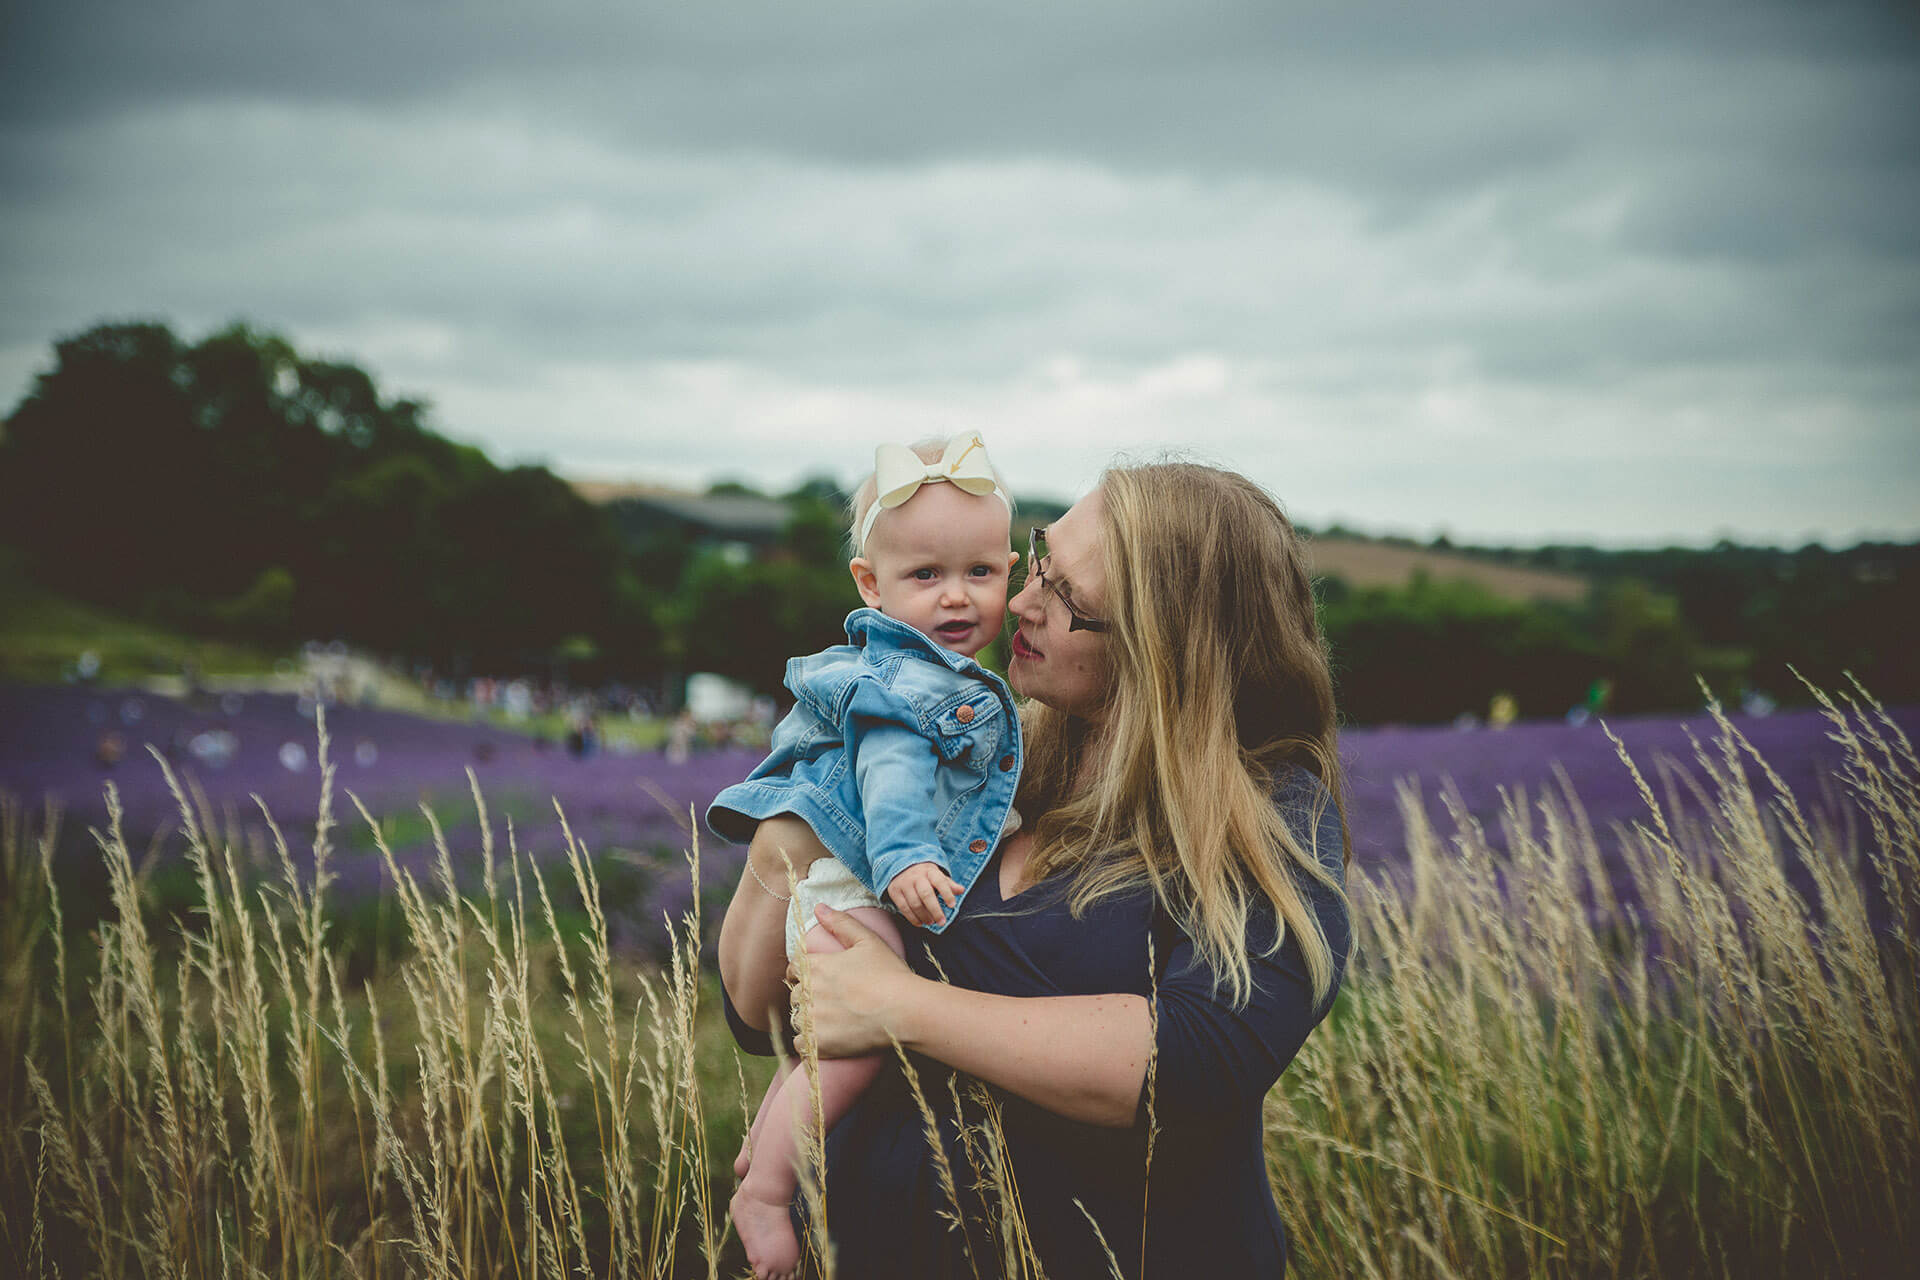 Mum and baby on a field of lavender